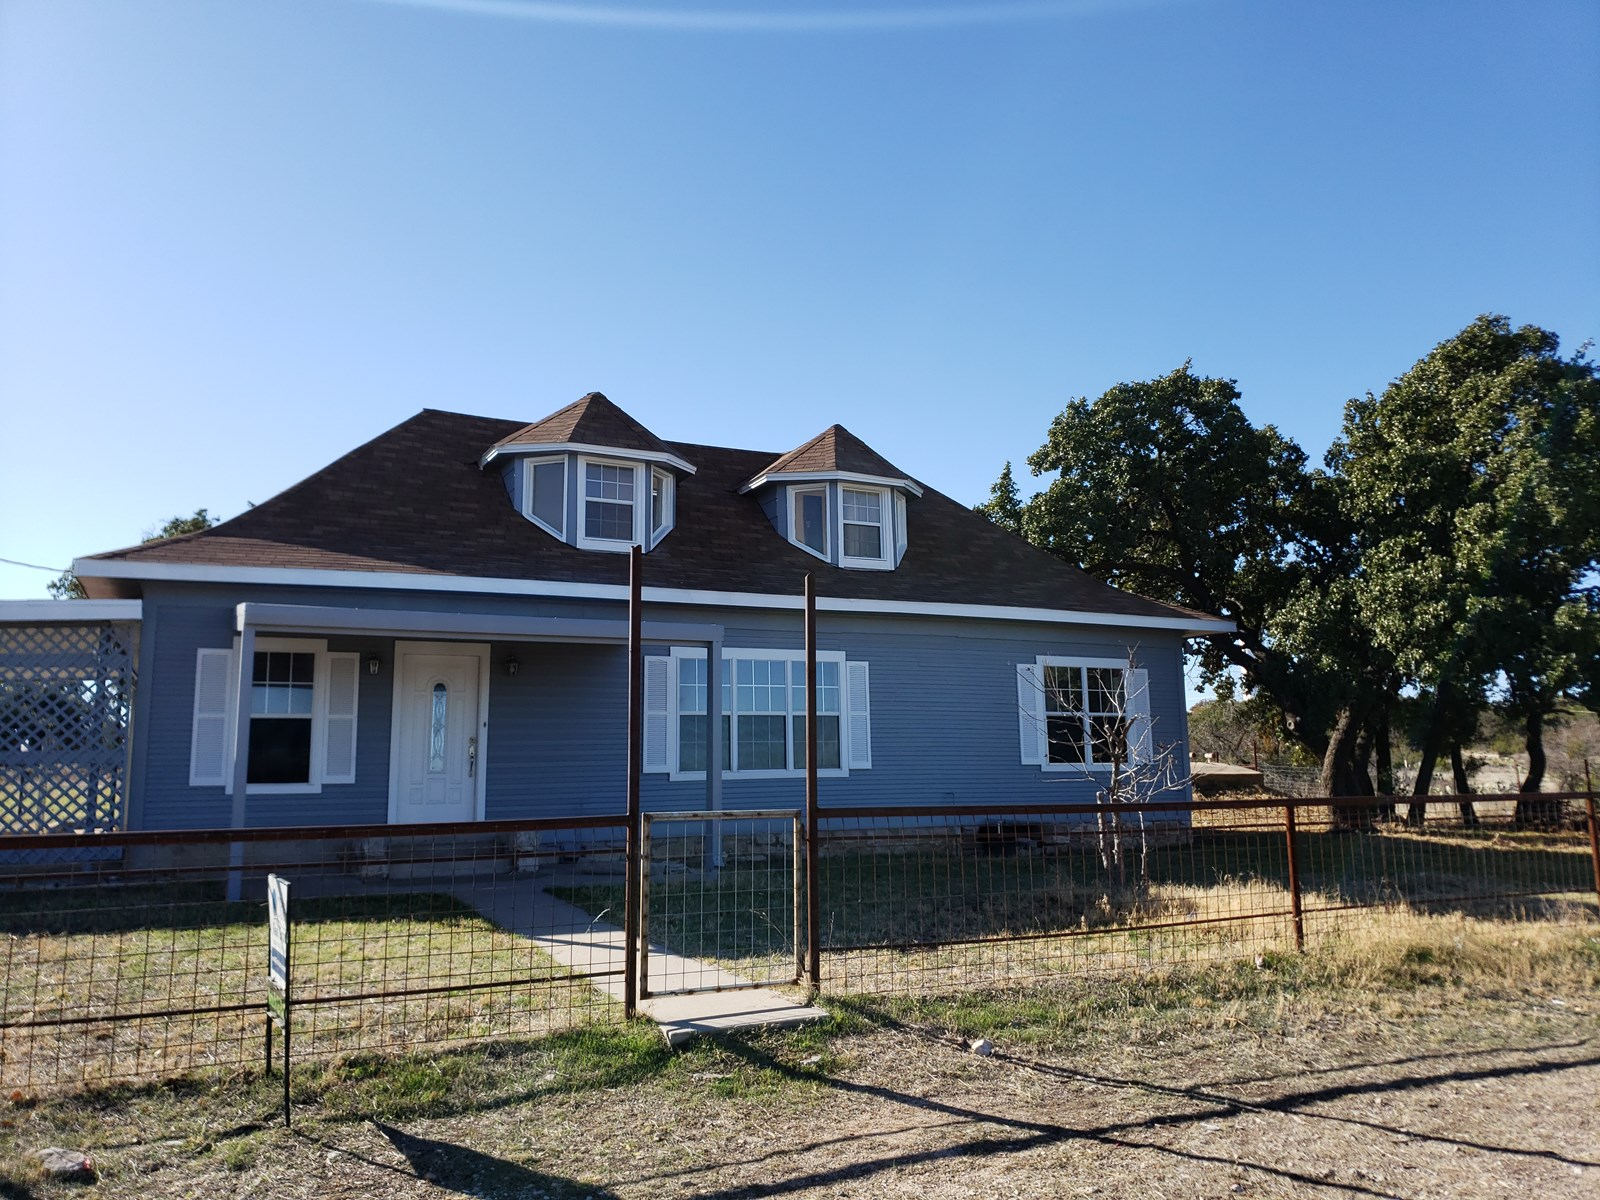 Large Home with Land for sale in Mertzon, TEXAS